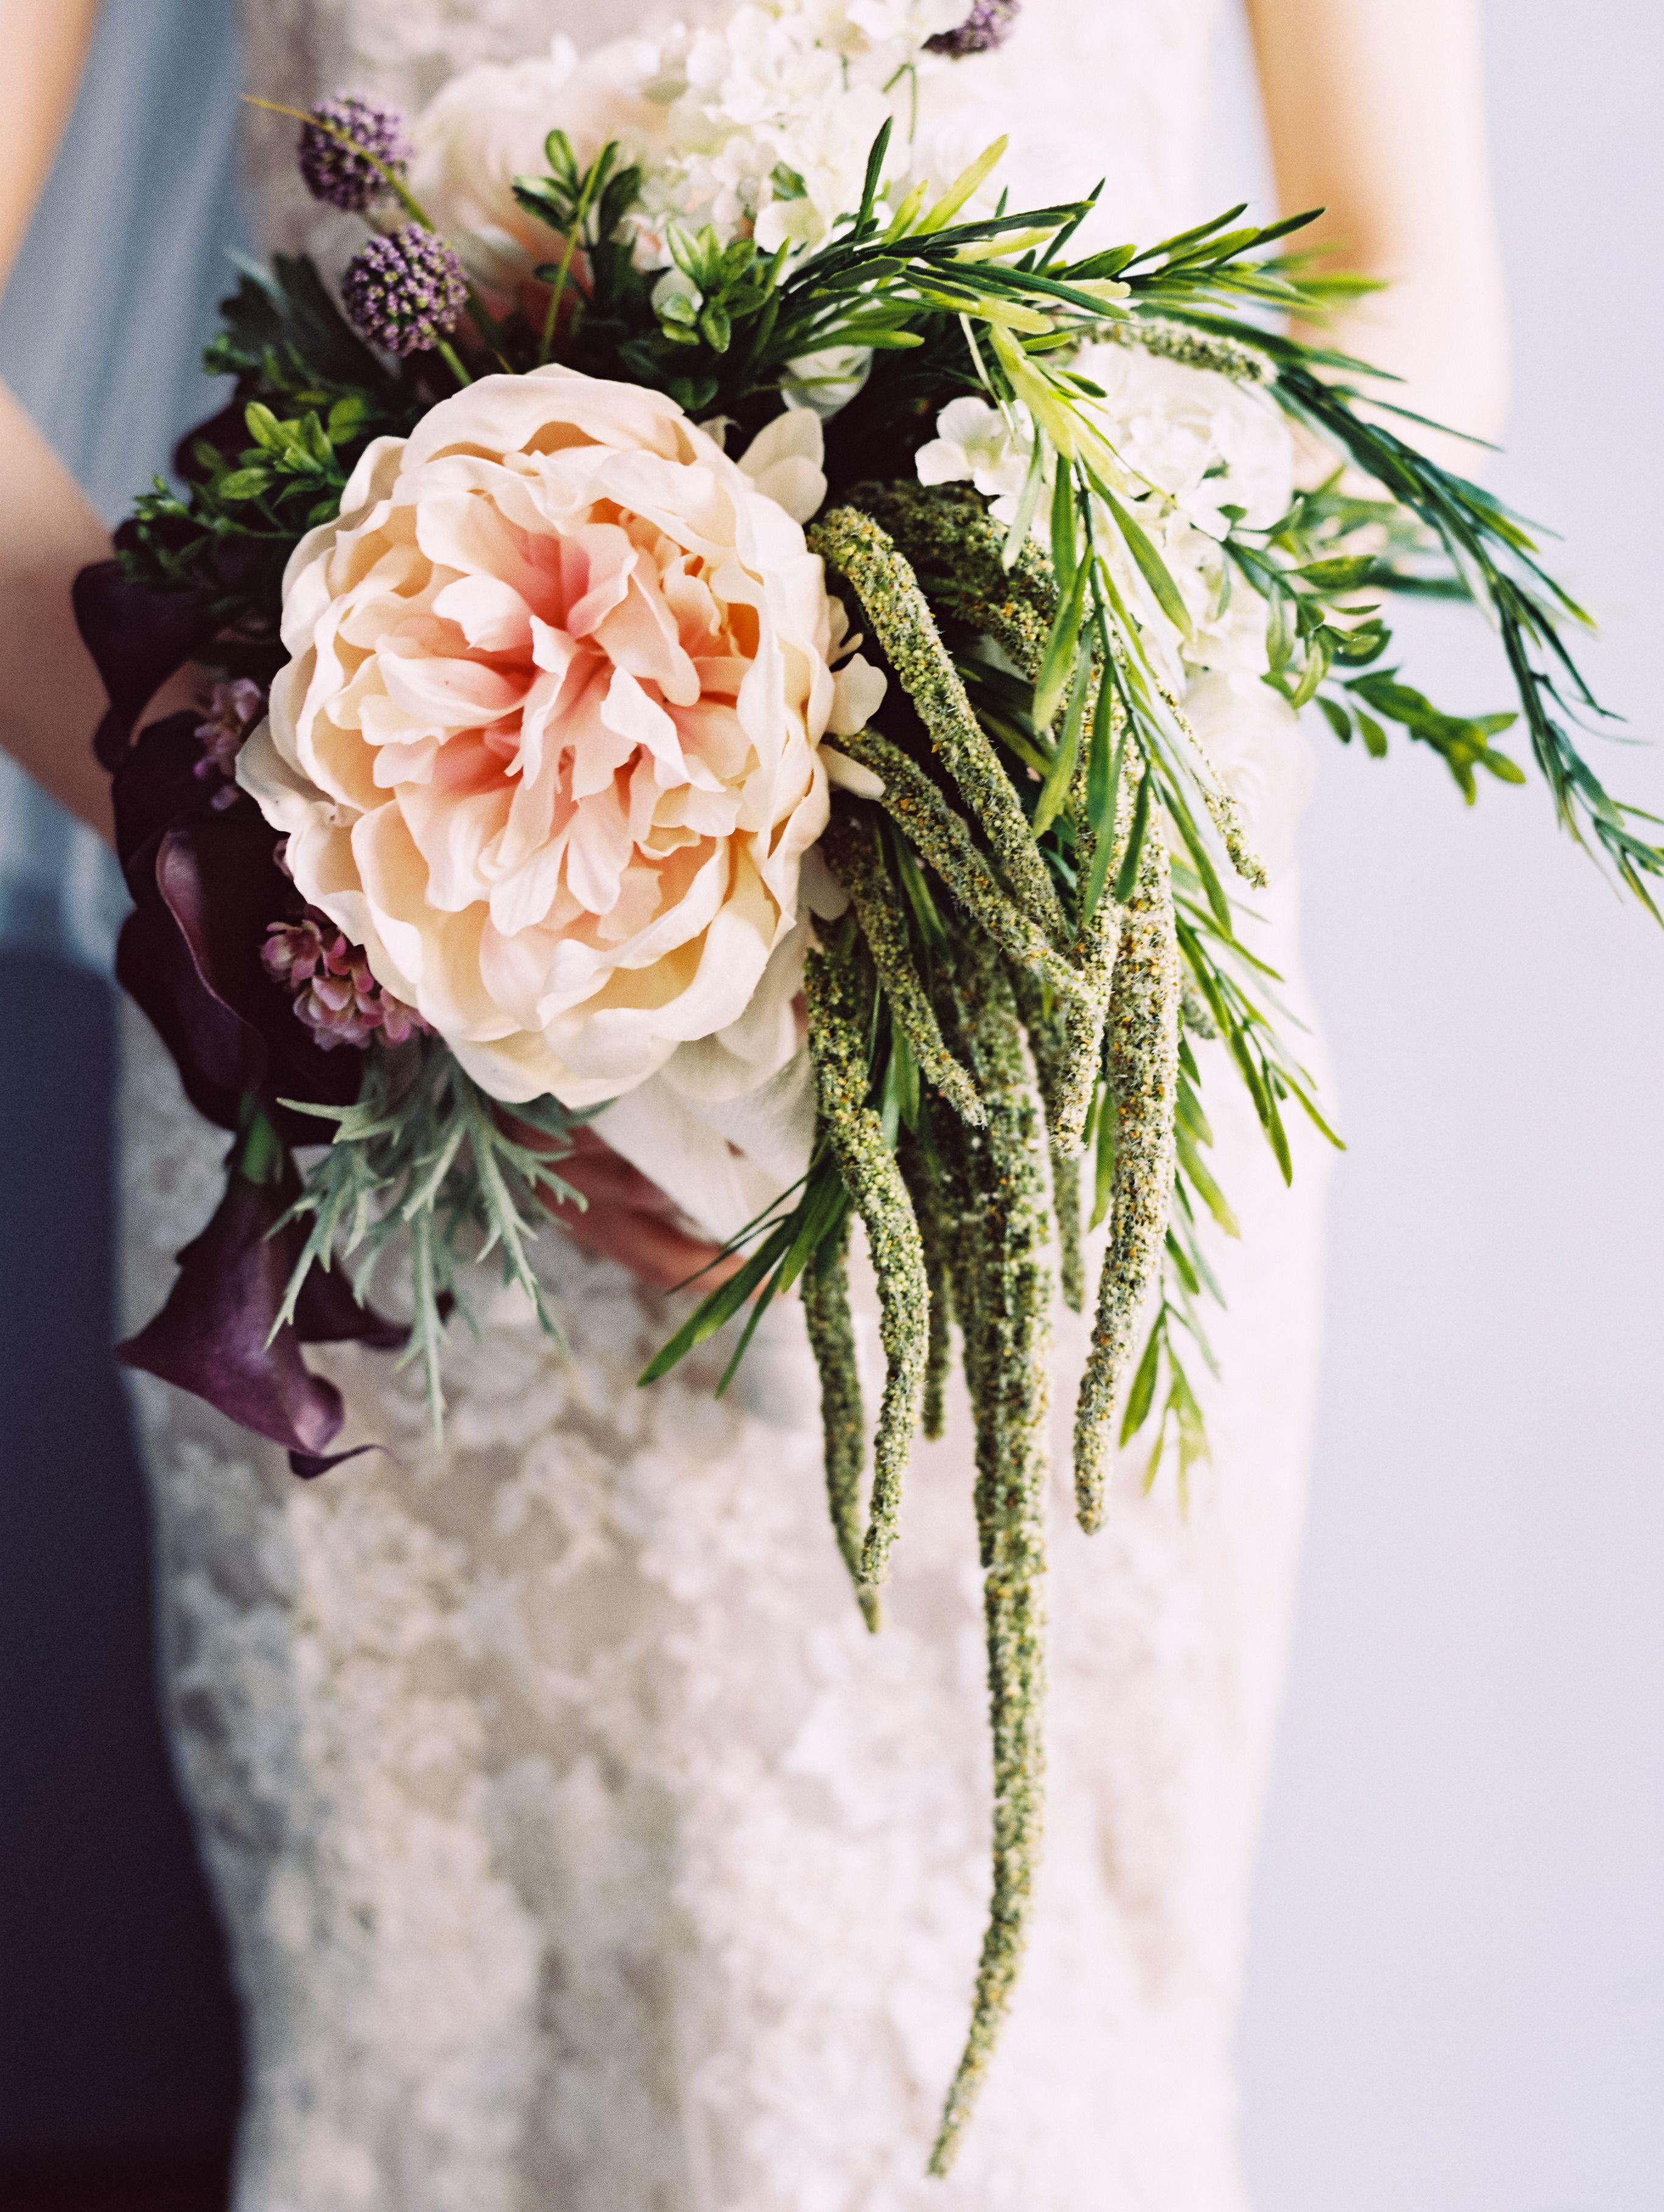 The Ethereal Bouquet Is A Whimsical Arrangement Of High Quality